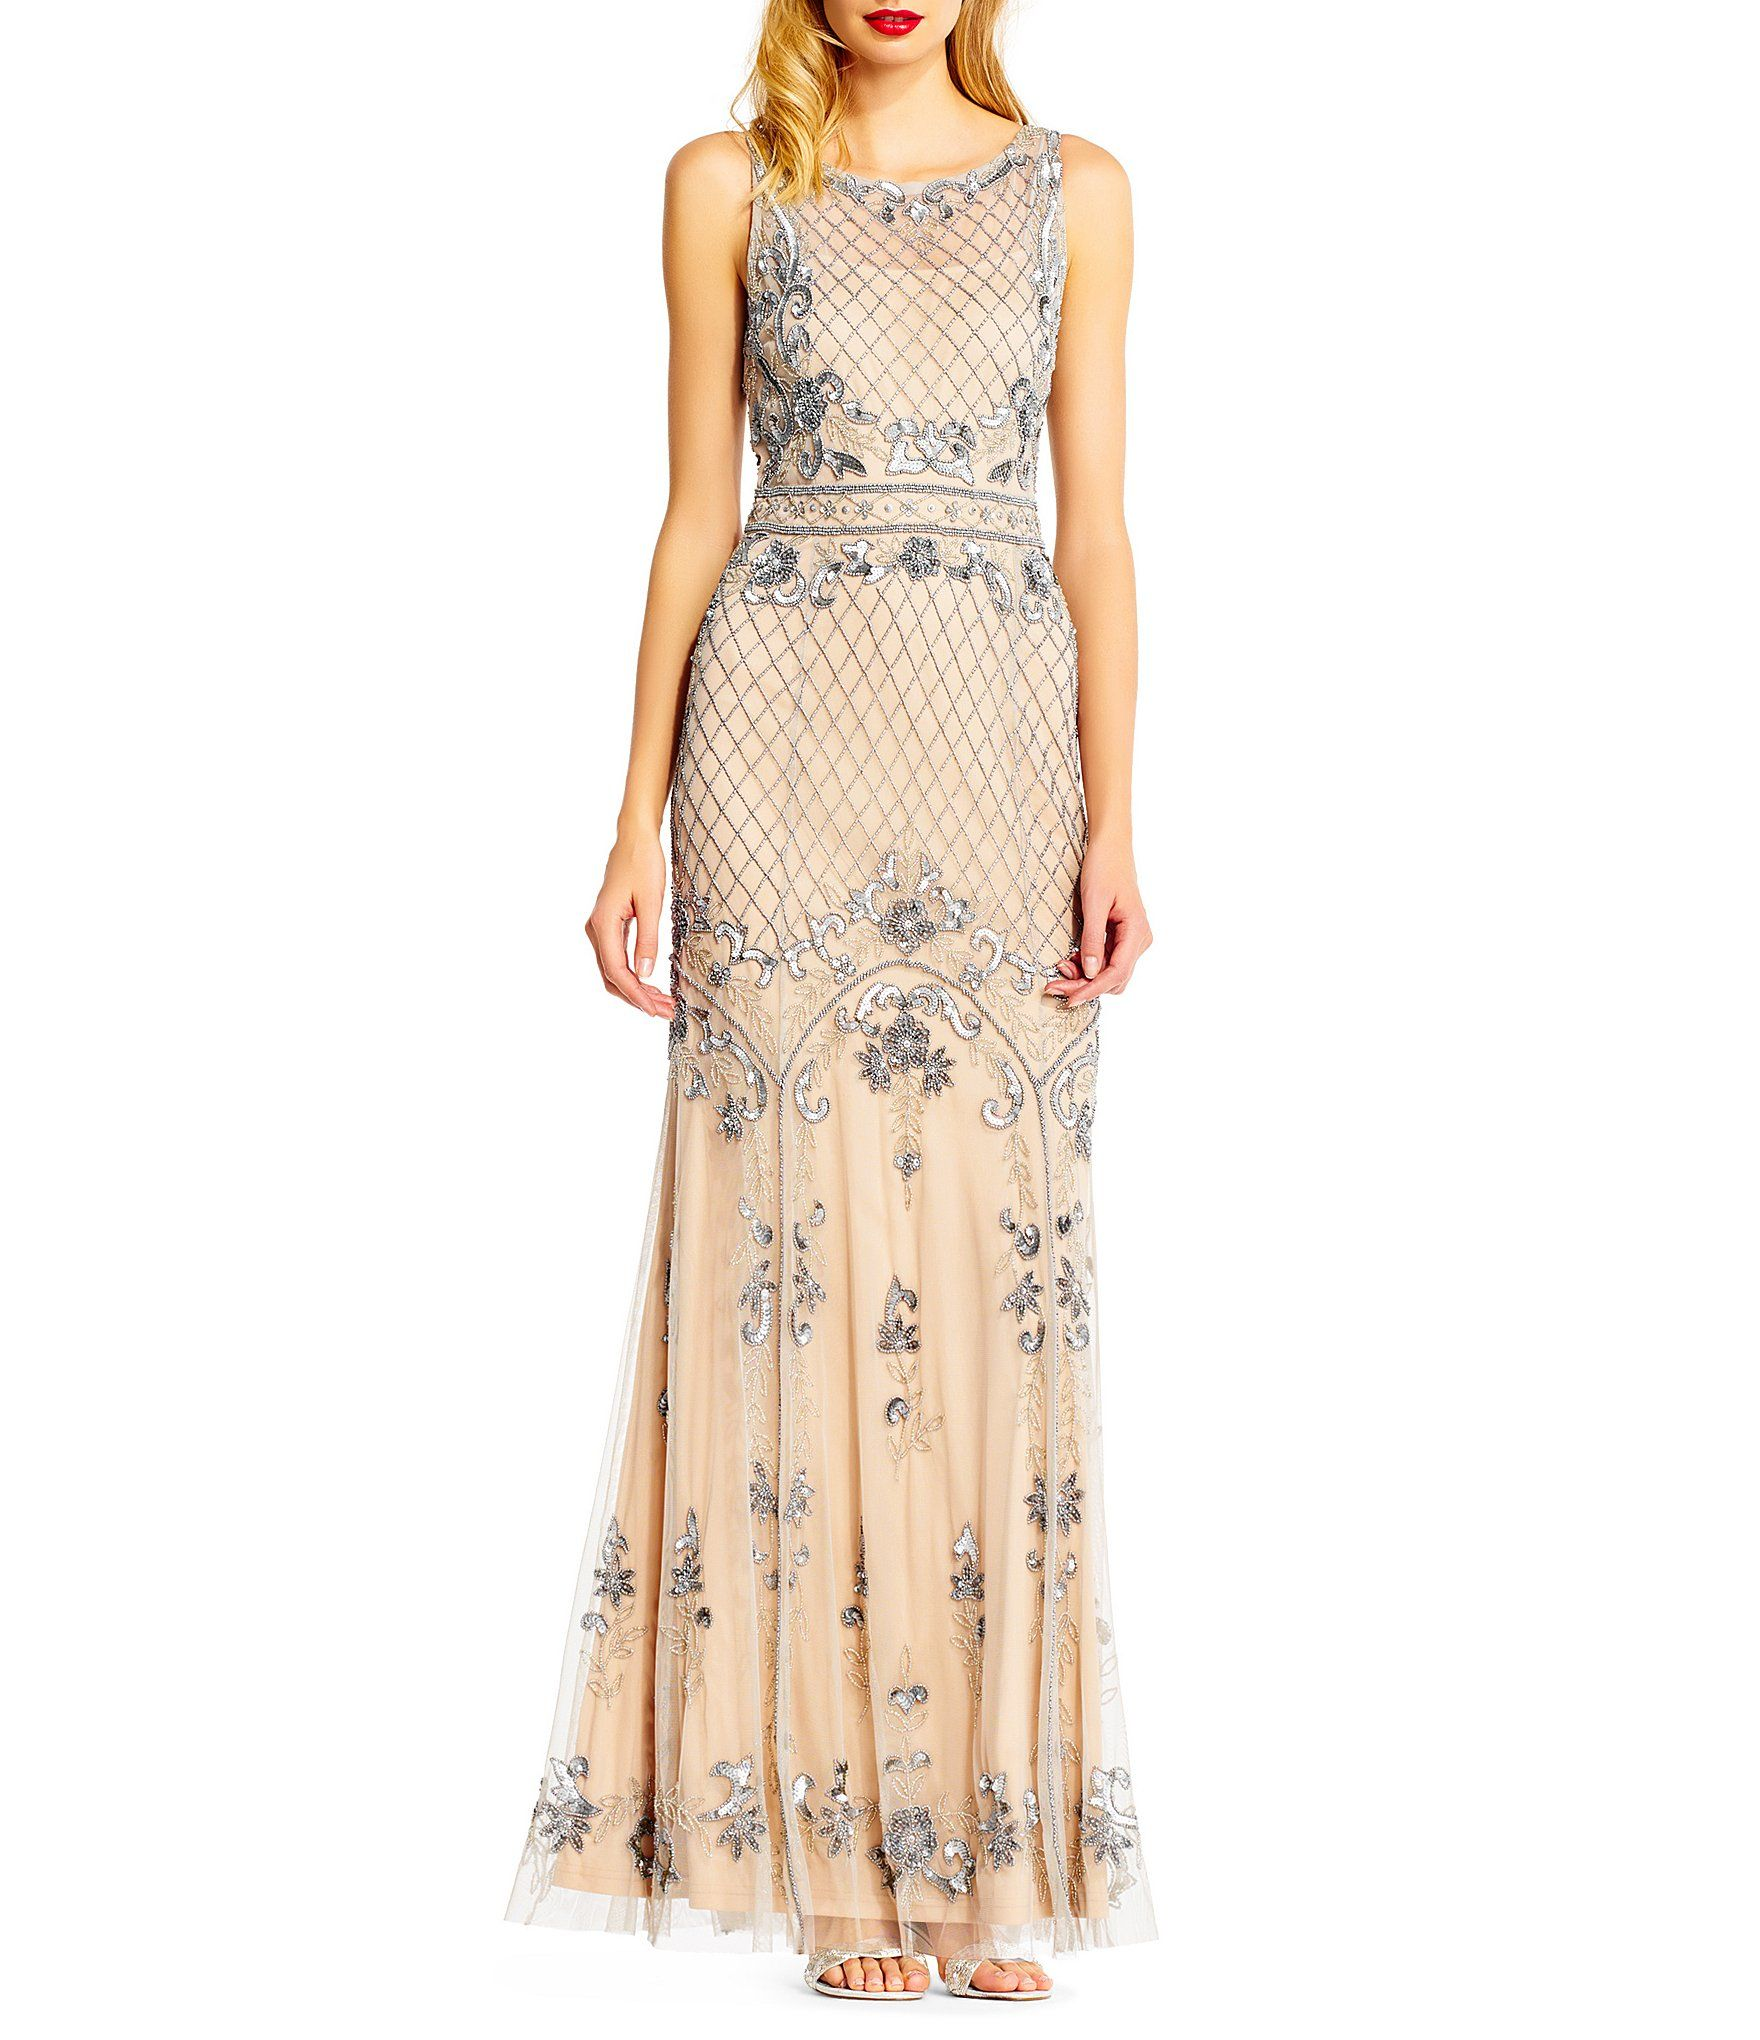 Shop for adrianna papell beaded illusion mermaid gown at dillards